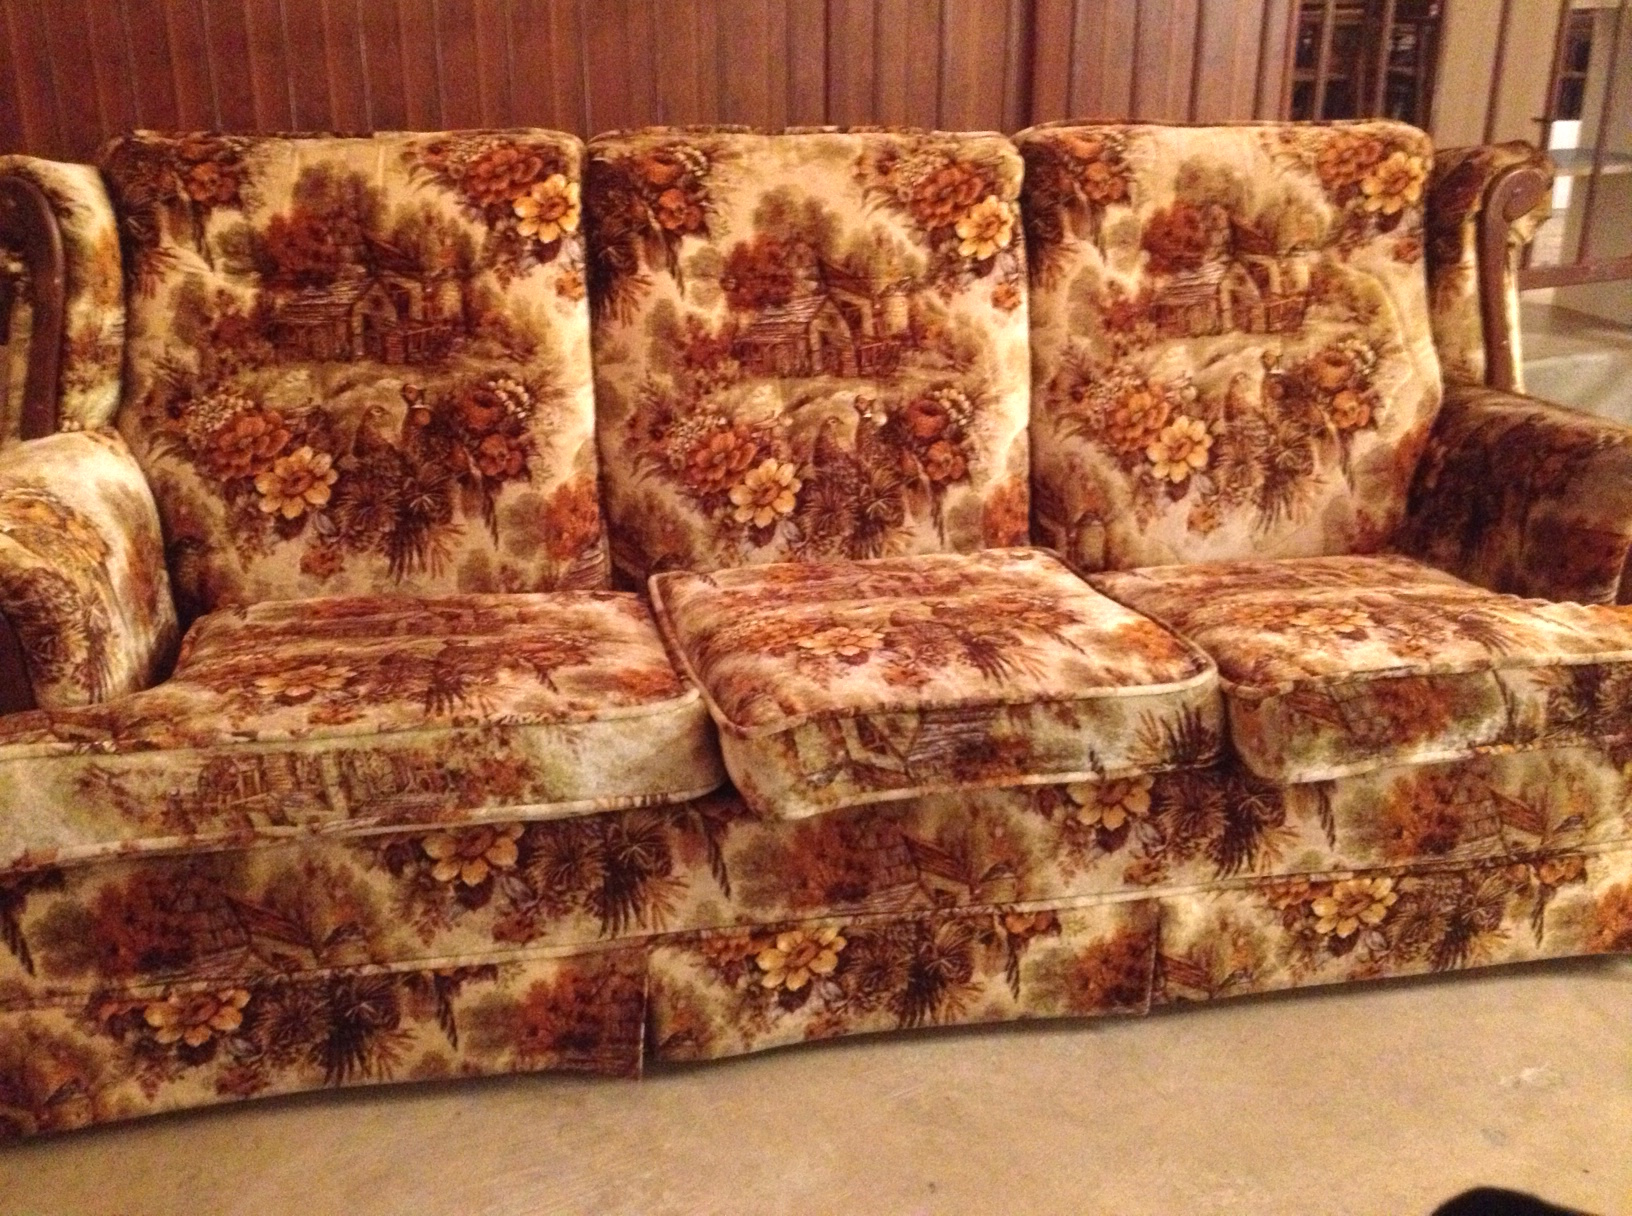 70s sofa colchon cama plegable it came from the story of your grandma s weird couch futzing around on social media as one does i recently stumbled upon a meme that hit close to home over picture patterned in an autumnal colored